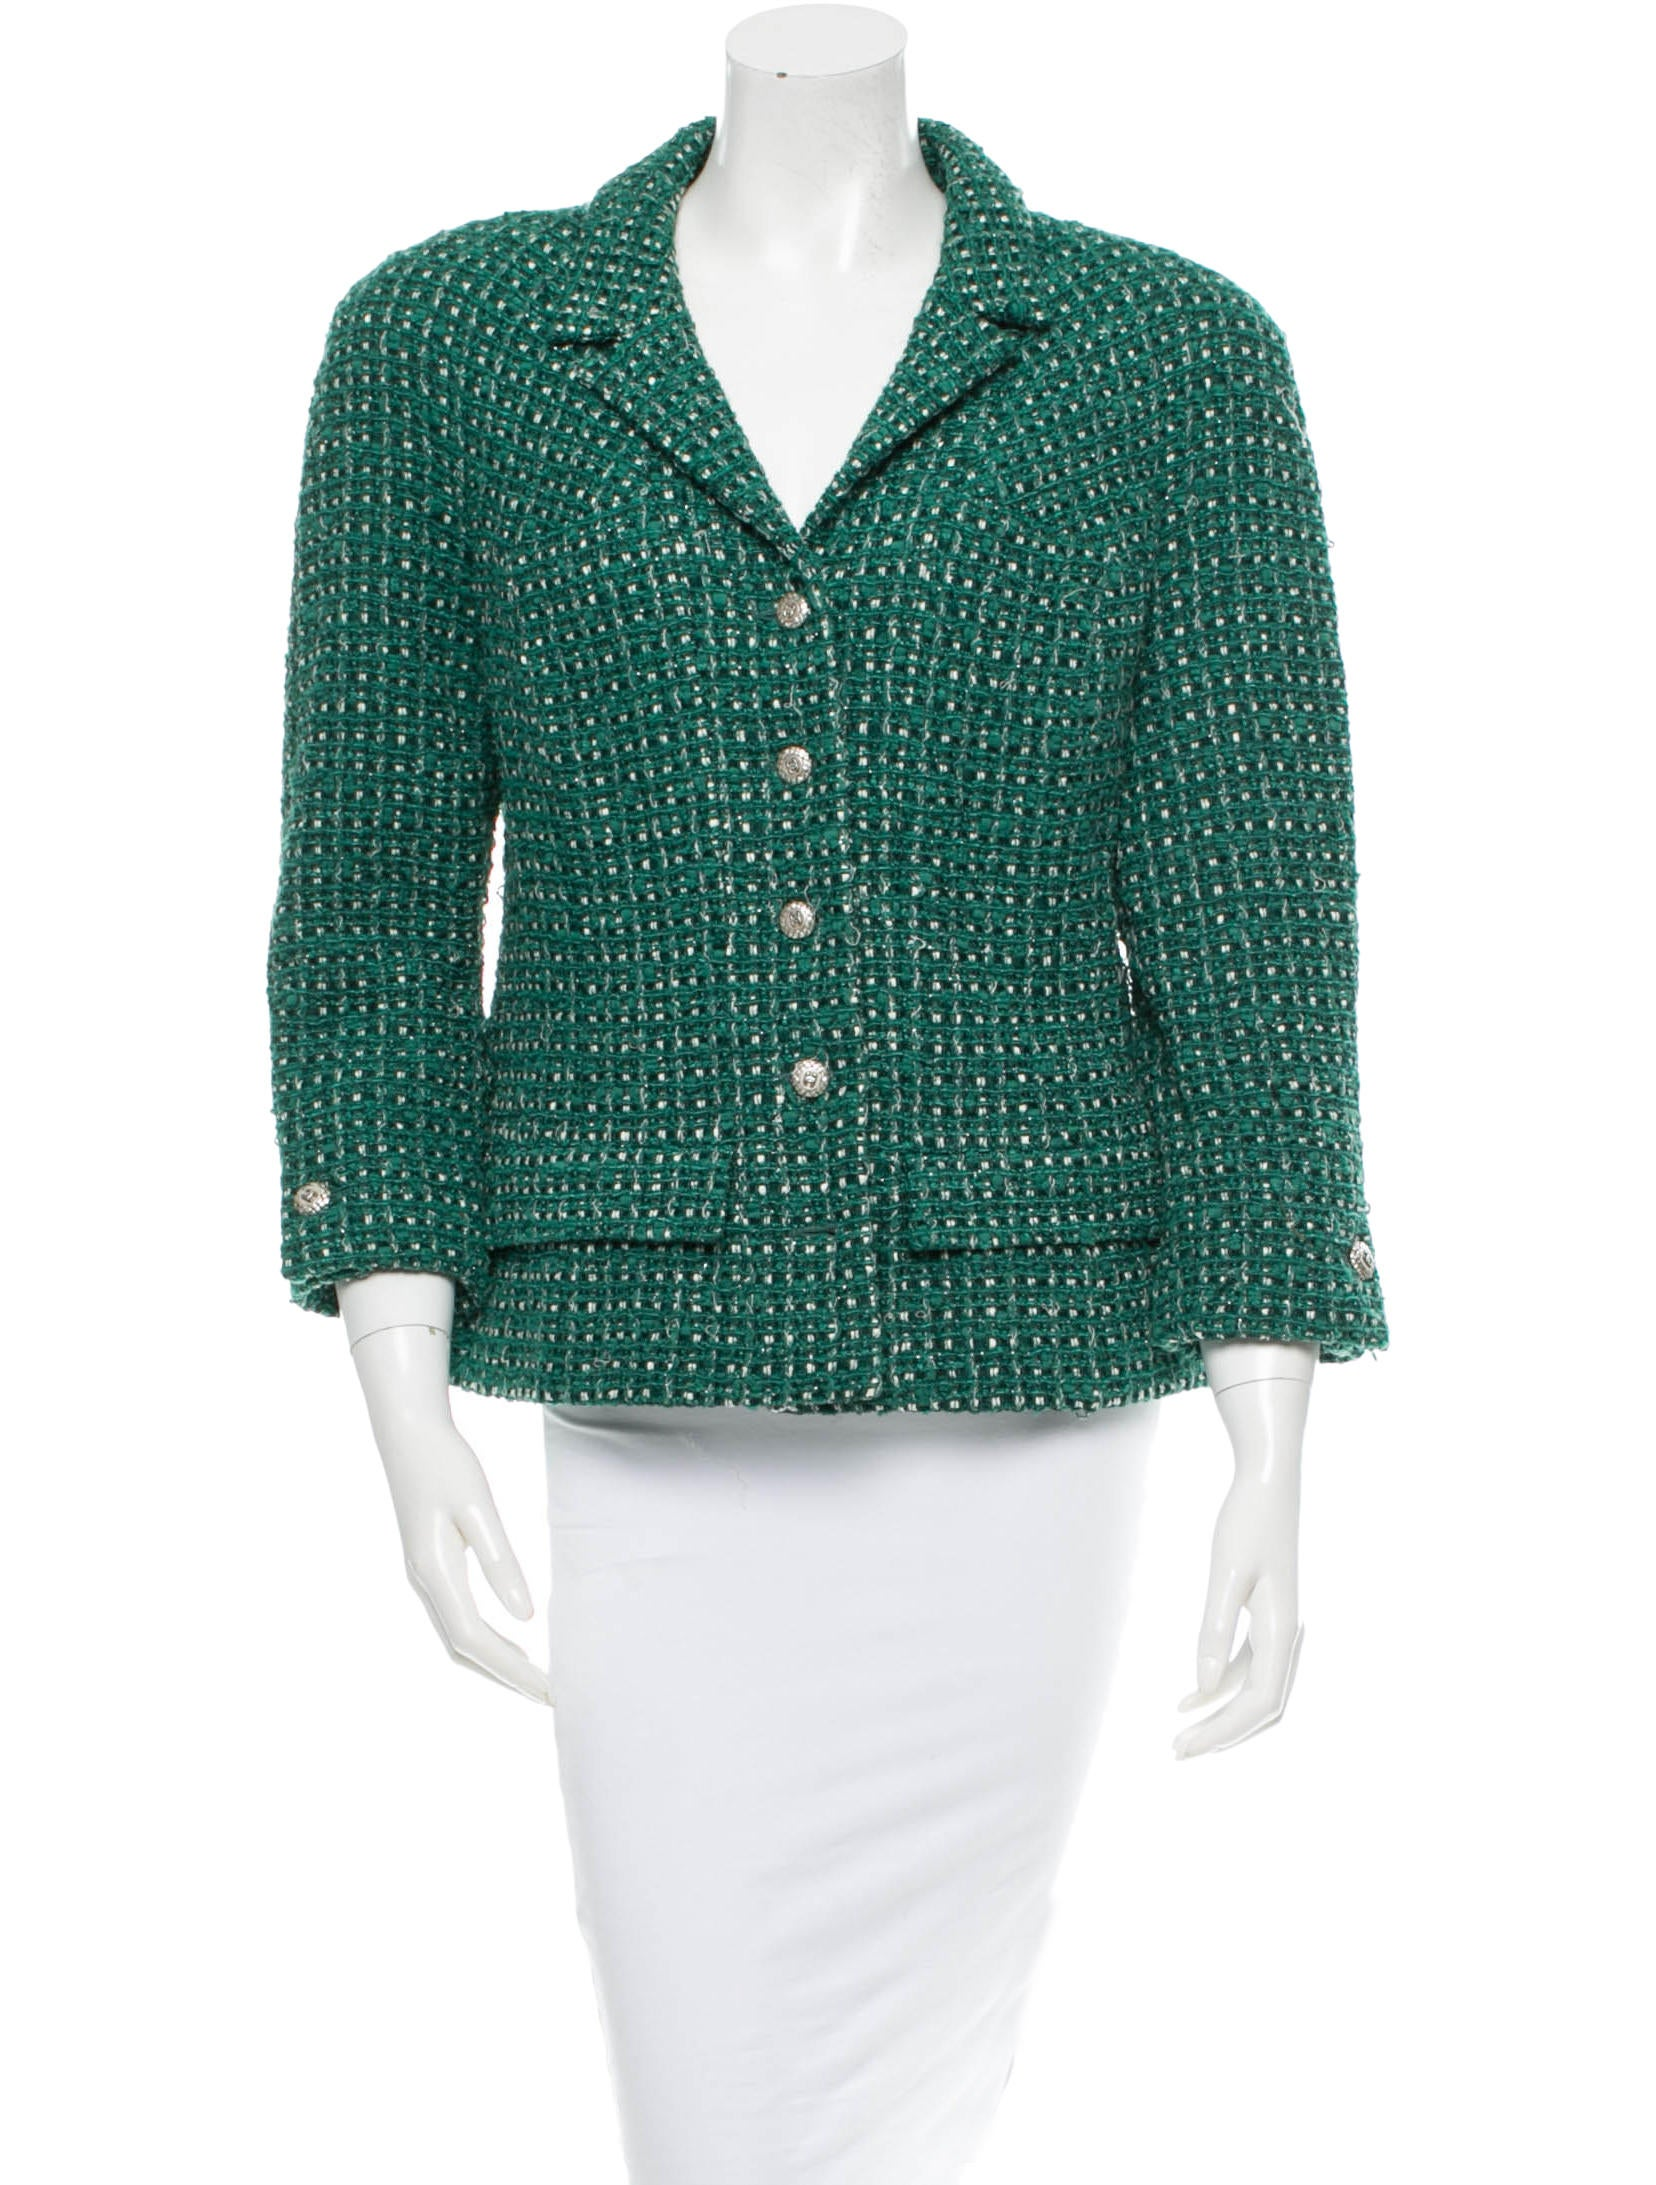 Try our Women's Bouclé Wool Jacket at Lands' End. Everything we sell is Guaranteed. Period.® Since